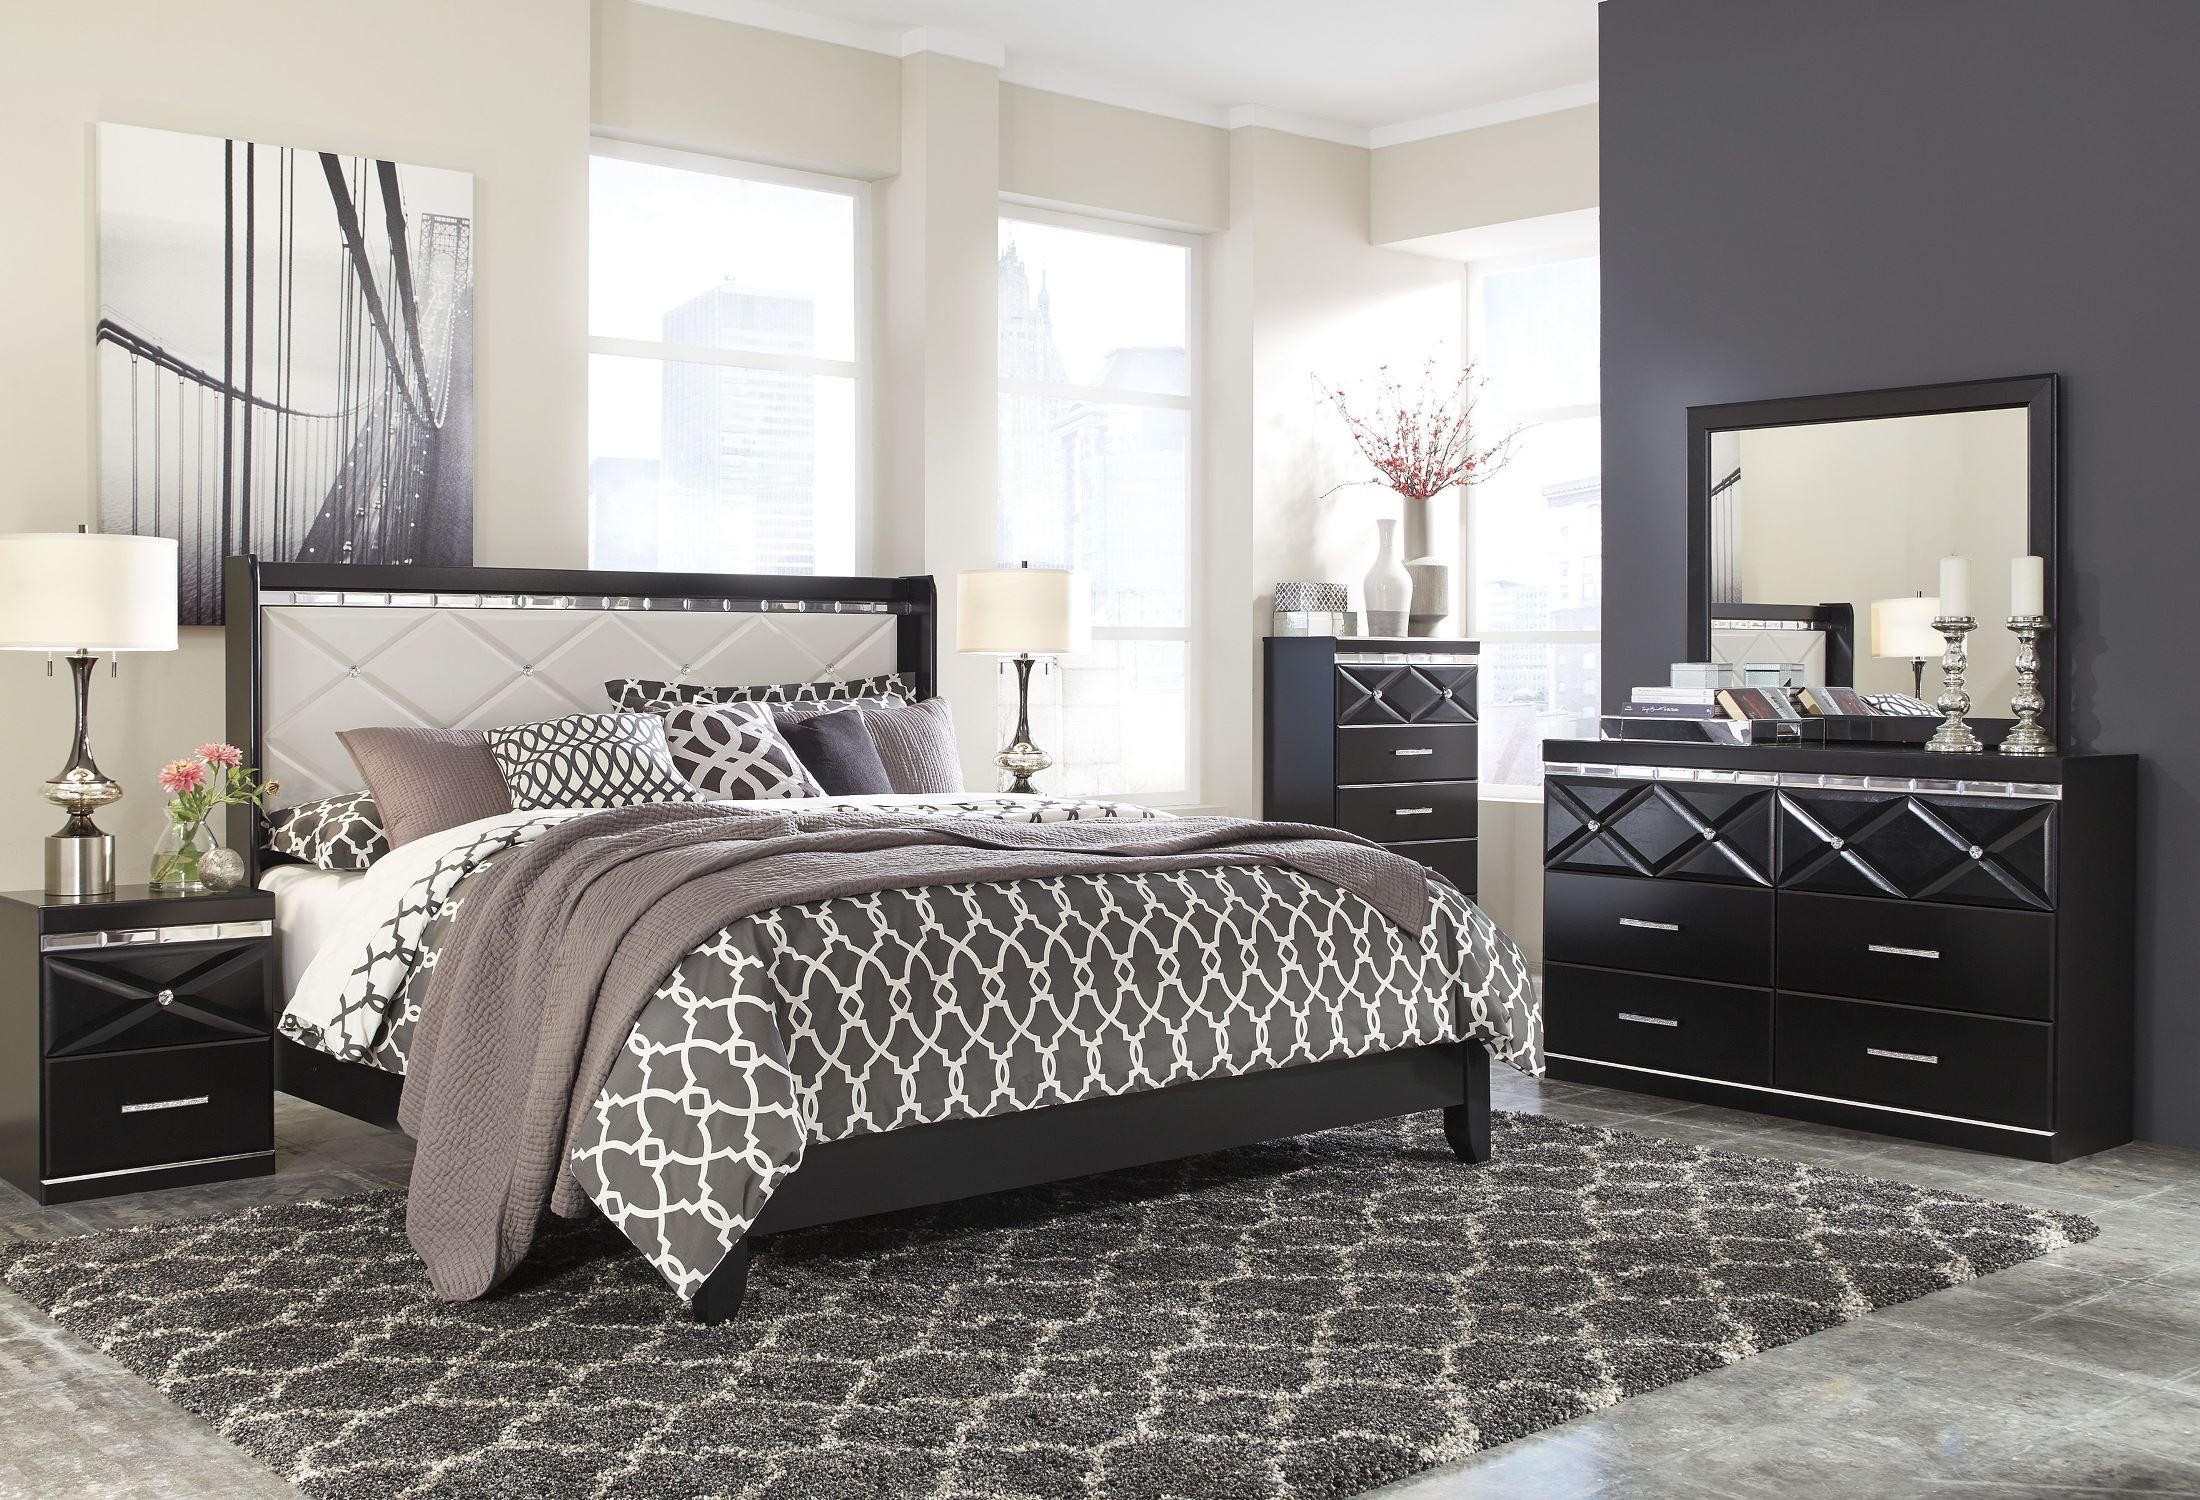 Fancee white panel bedroom set from ashley b348 57 54 for Bed 3